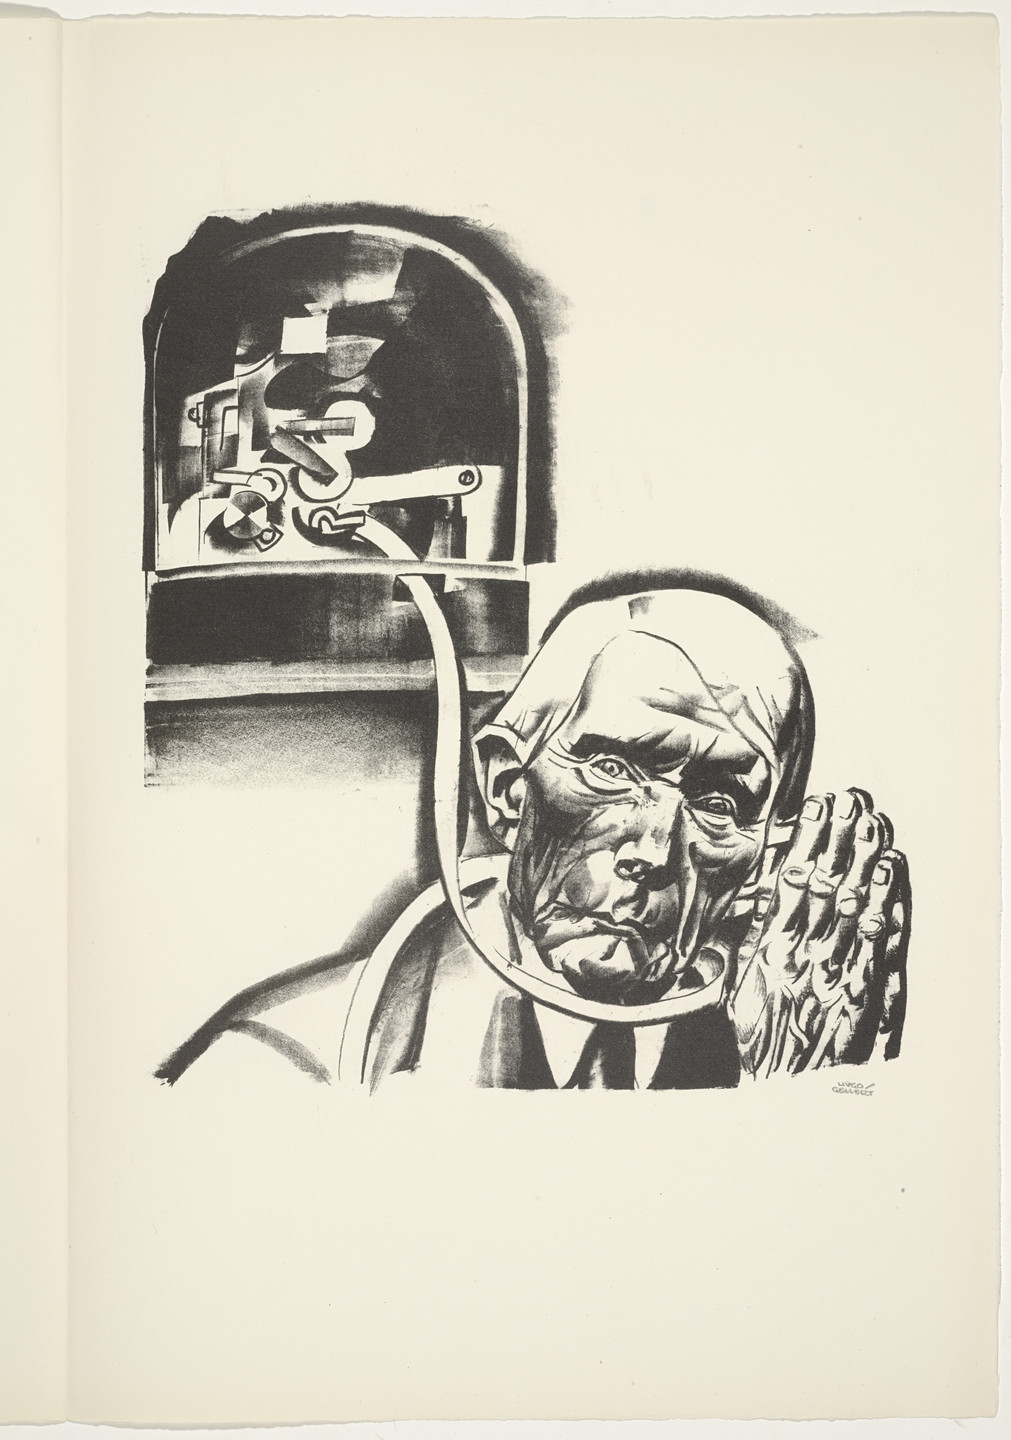 Hugo Gellert. Plate (folio 38) from 'Capital' in Pictures. 1933